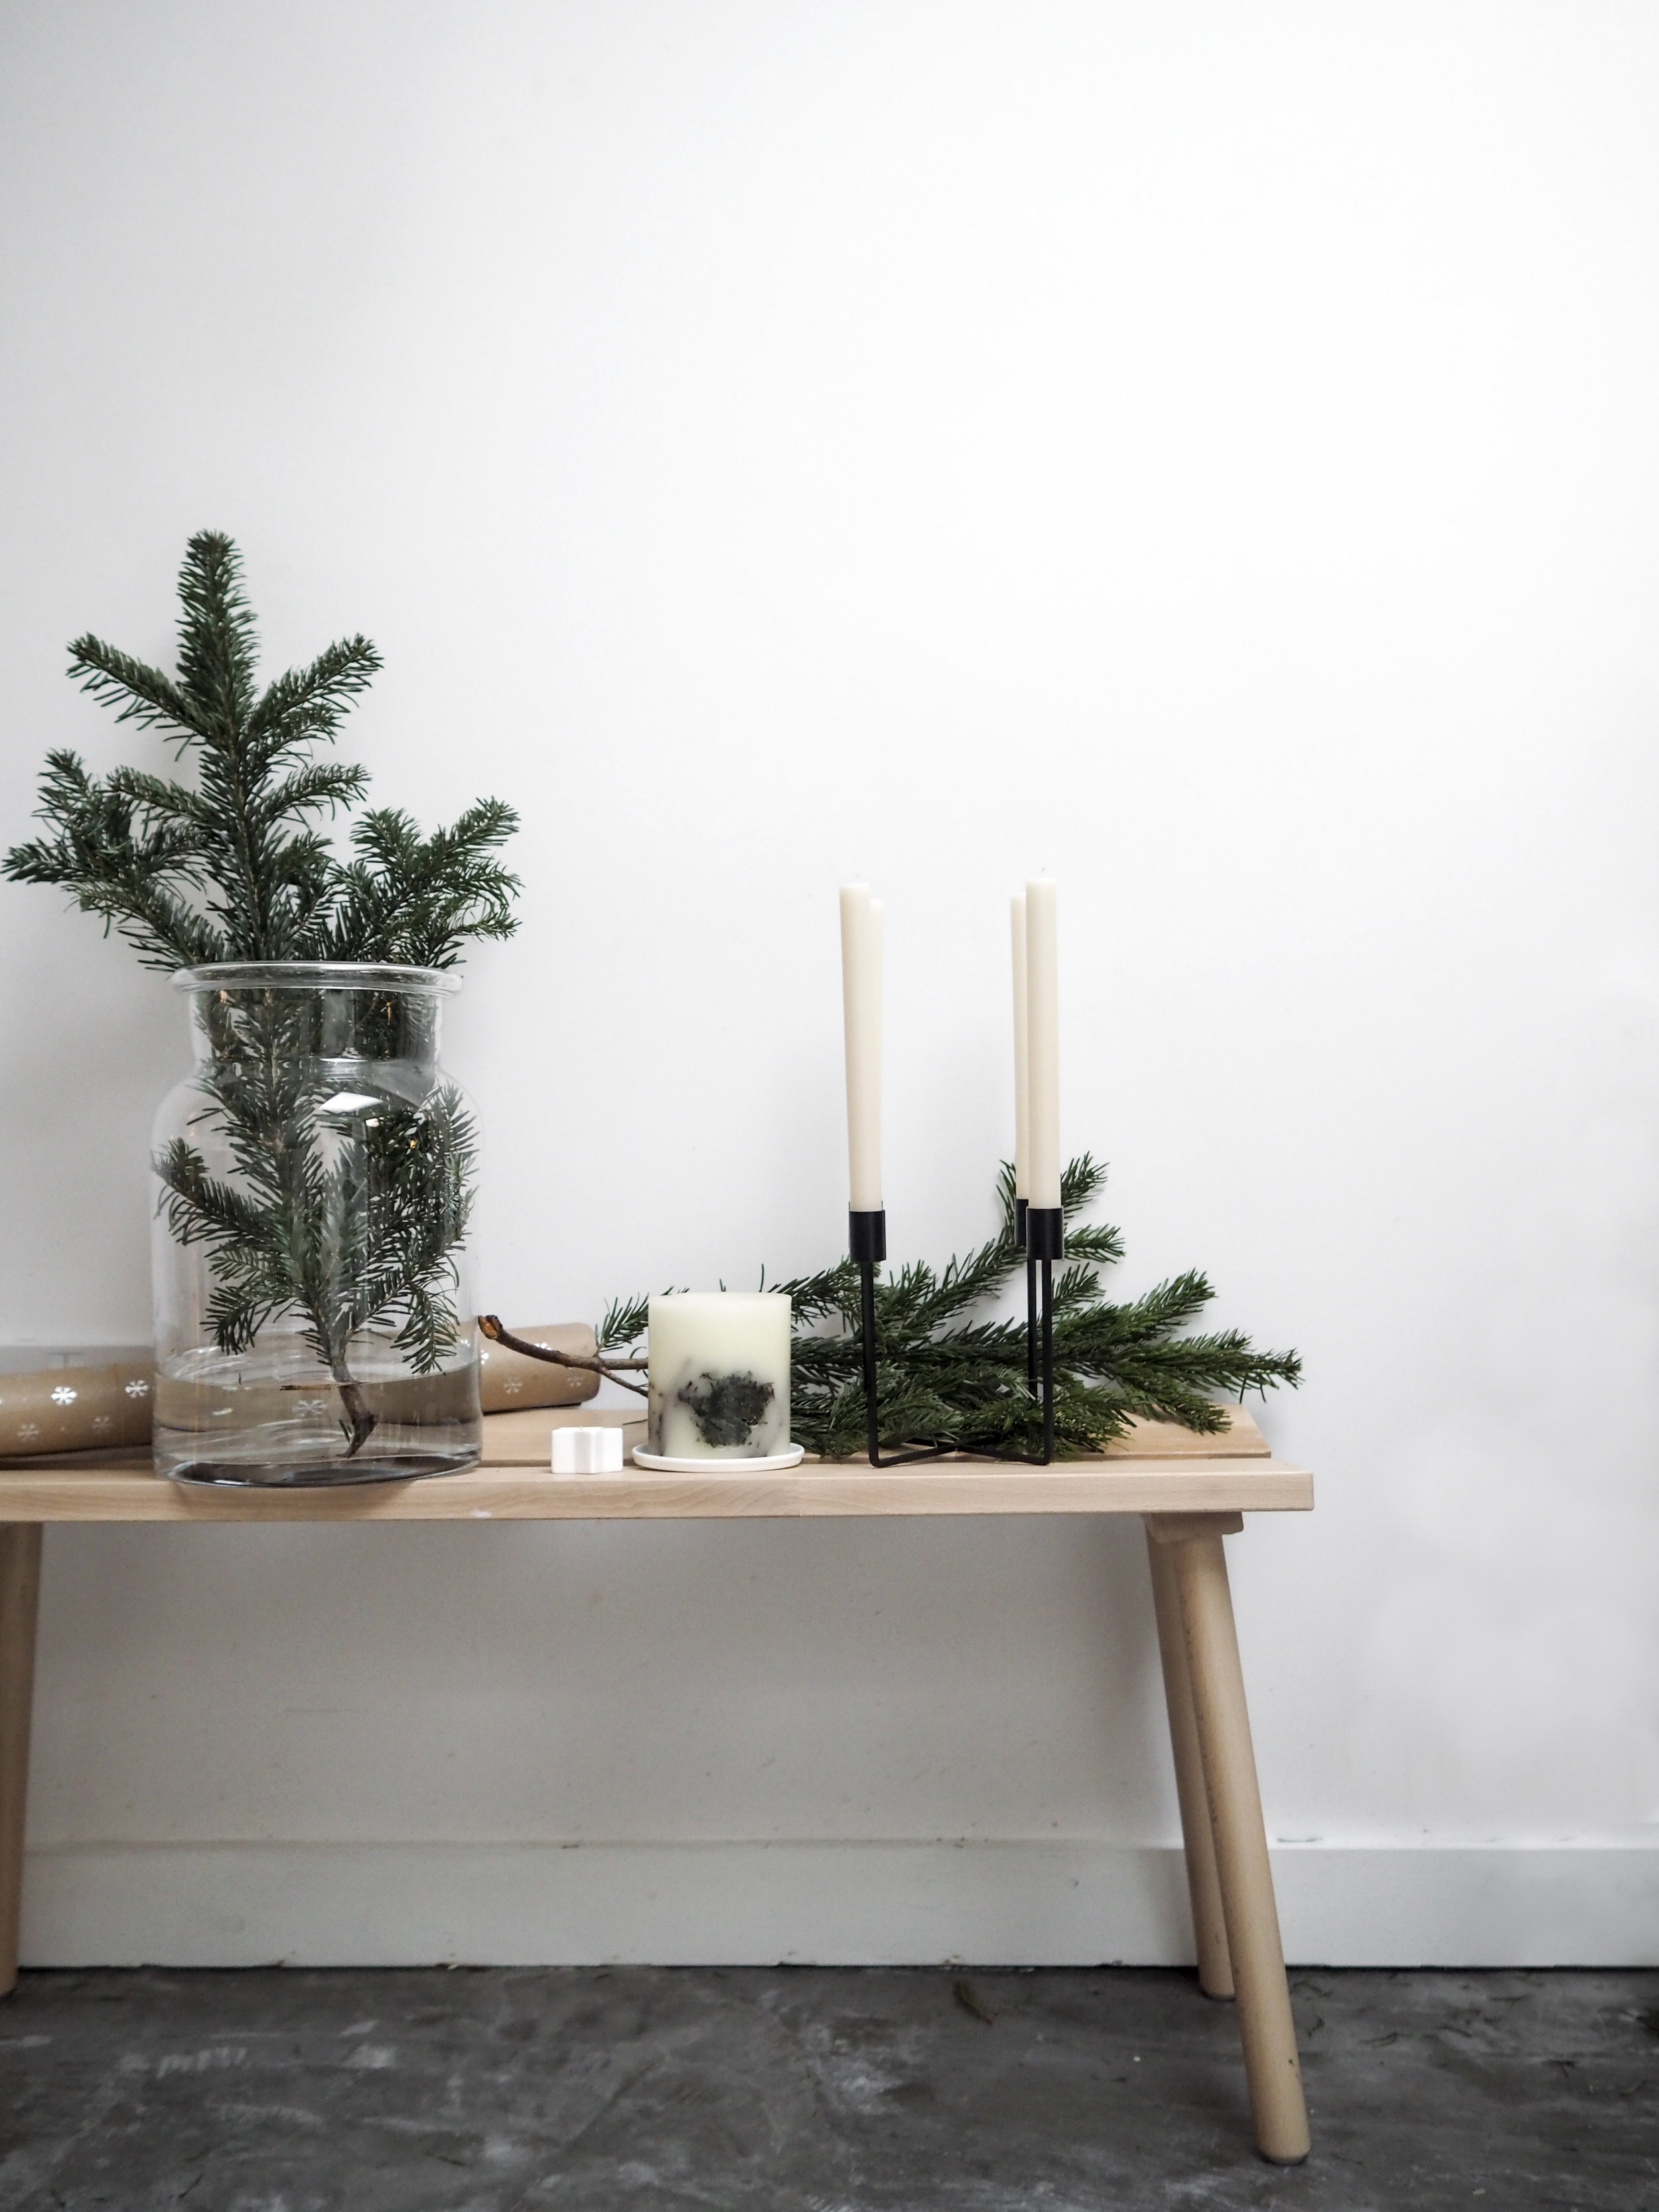 Aurelie Vase  /  Fir Tree Botanical Candle  /  Candle Plate  /  Pure Dinner Candles